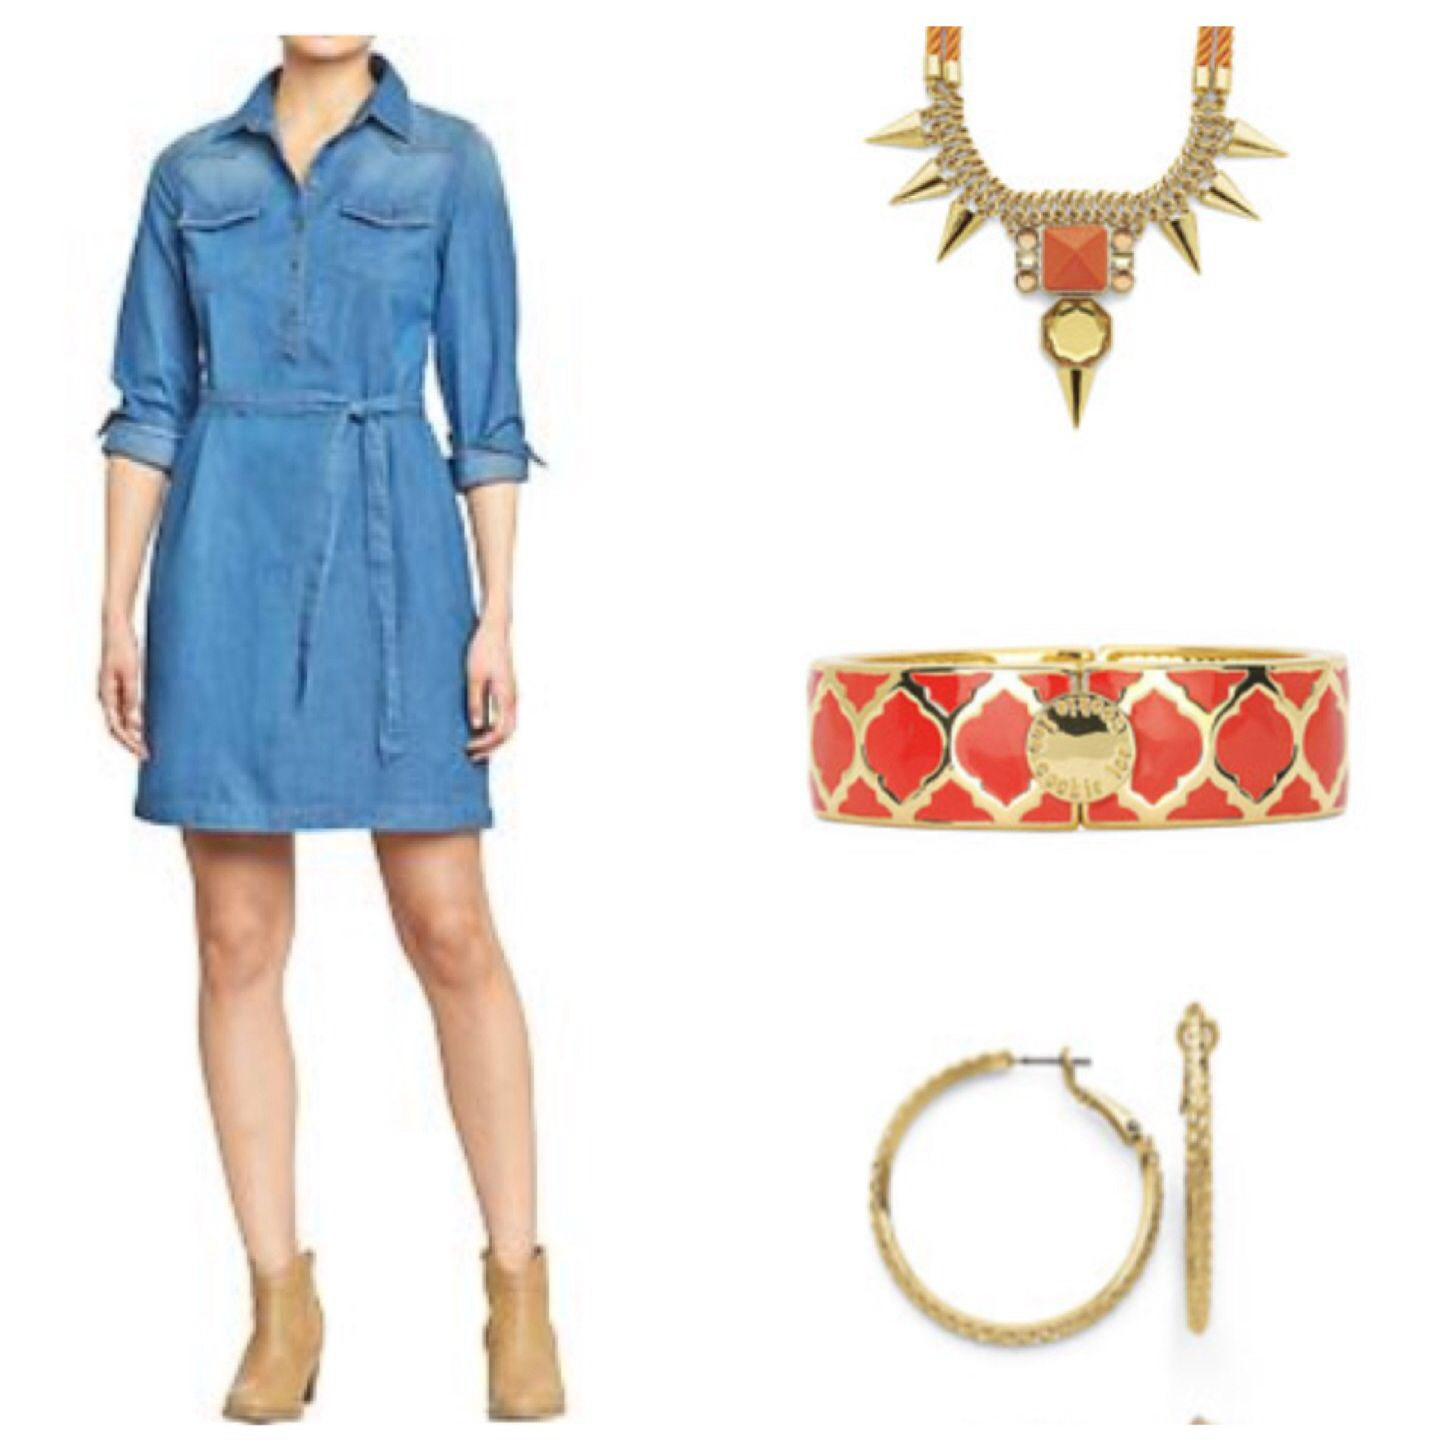 Add a pop of color to a shirt dress with Cookie Lee's : Art Affair Orange necklace ($42), and Orange Marrakech Bangle ($36)  Mixed Metal Earring Set $36 shop at www.cookielee.biz/amberbair1